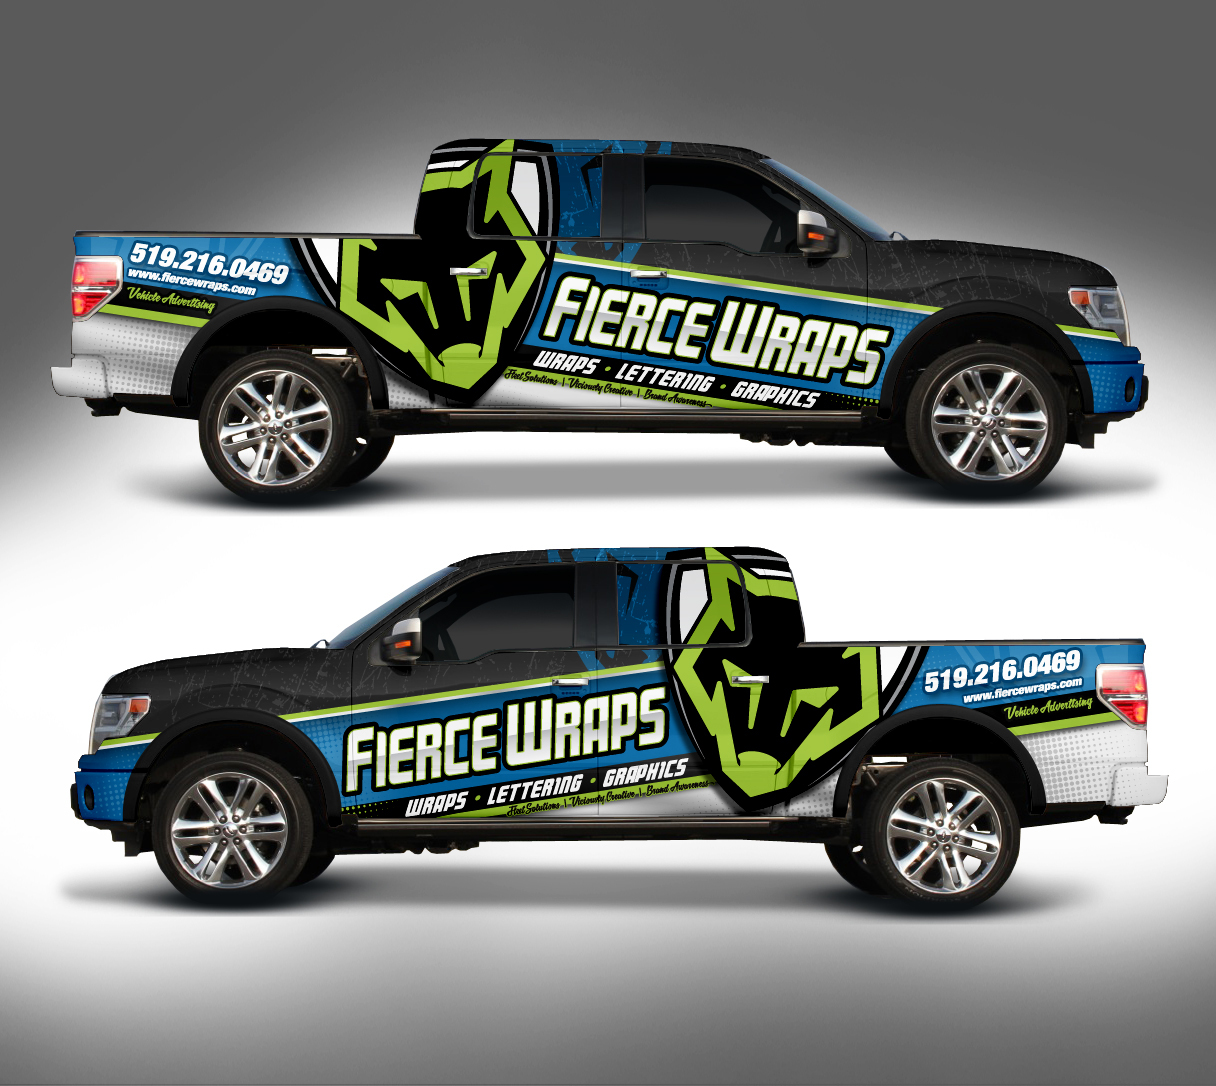 Truck Wrap Design For FierceWraps Car Wraps Pinterest Wraps - Modern vehicle decals for business